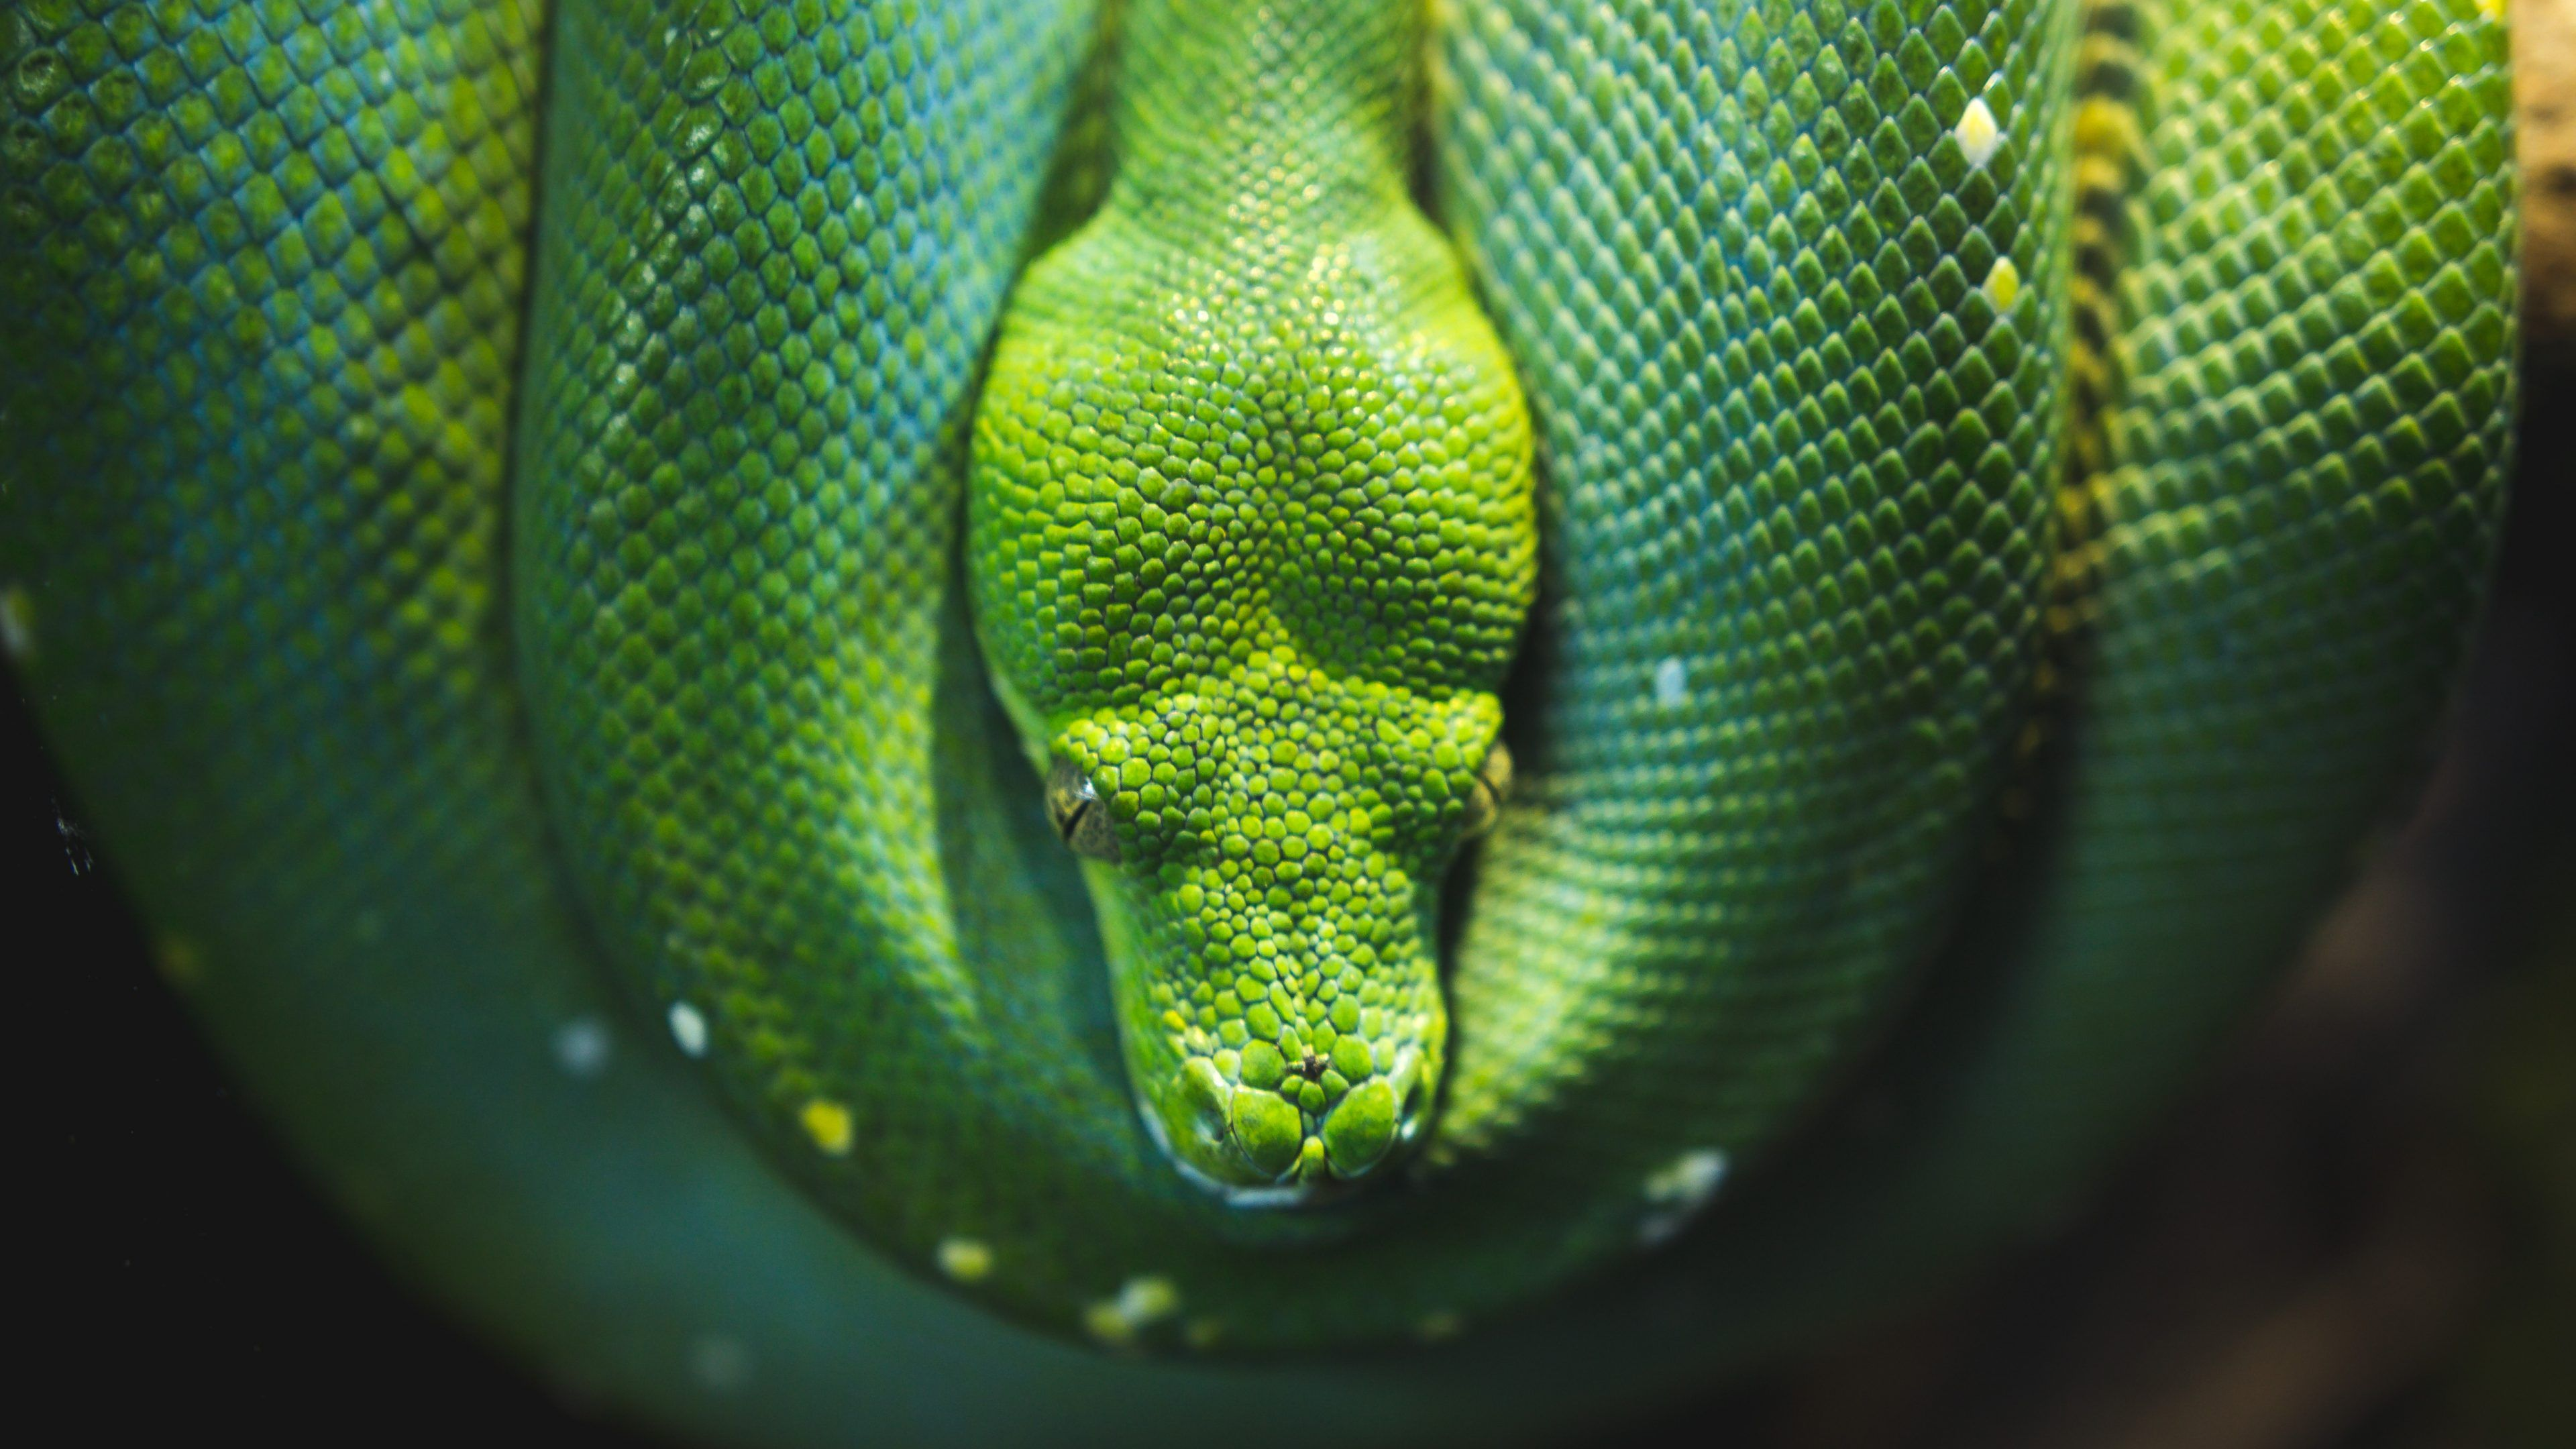 3840x2160 Snake Close Up Wallpaper 4K Background | HD Wallpaper Background